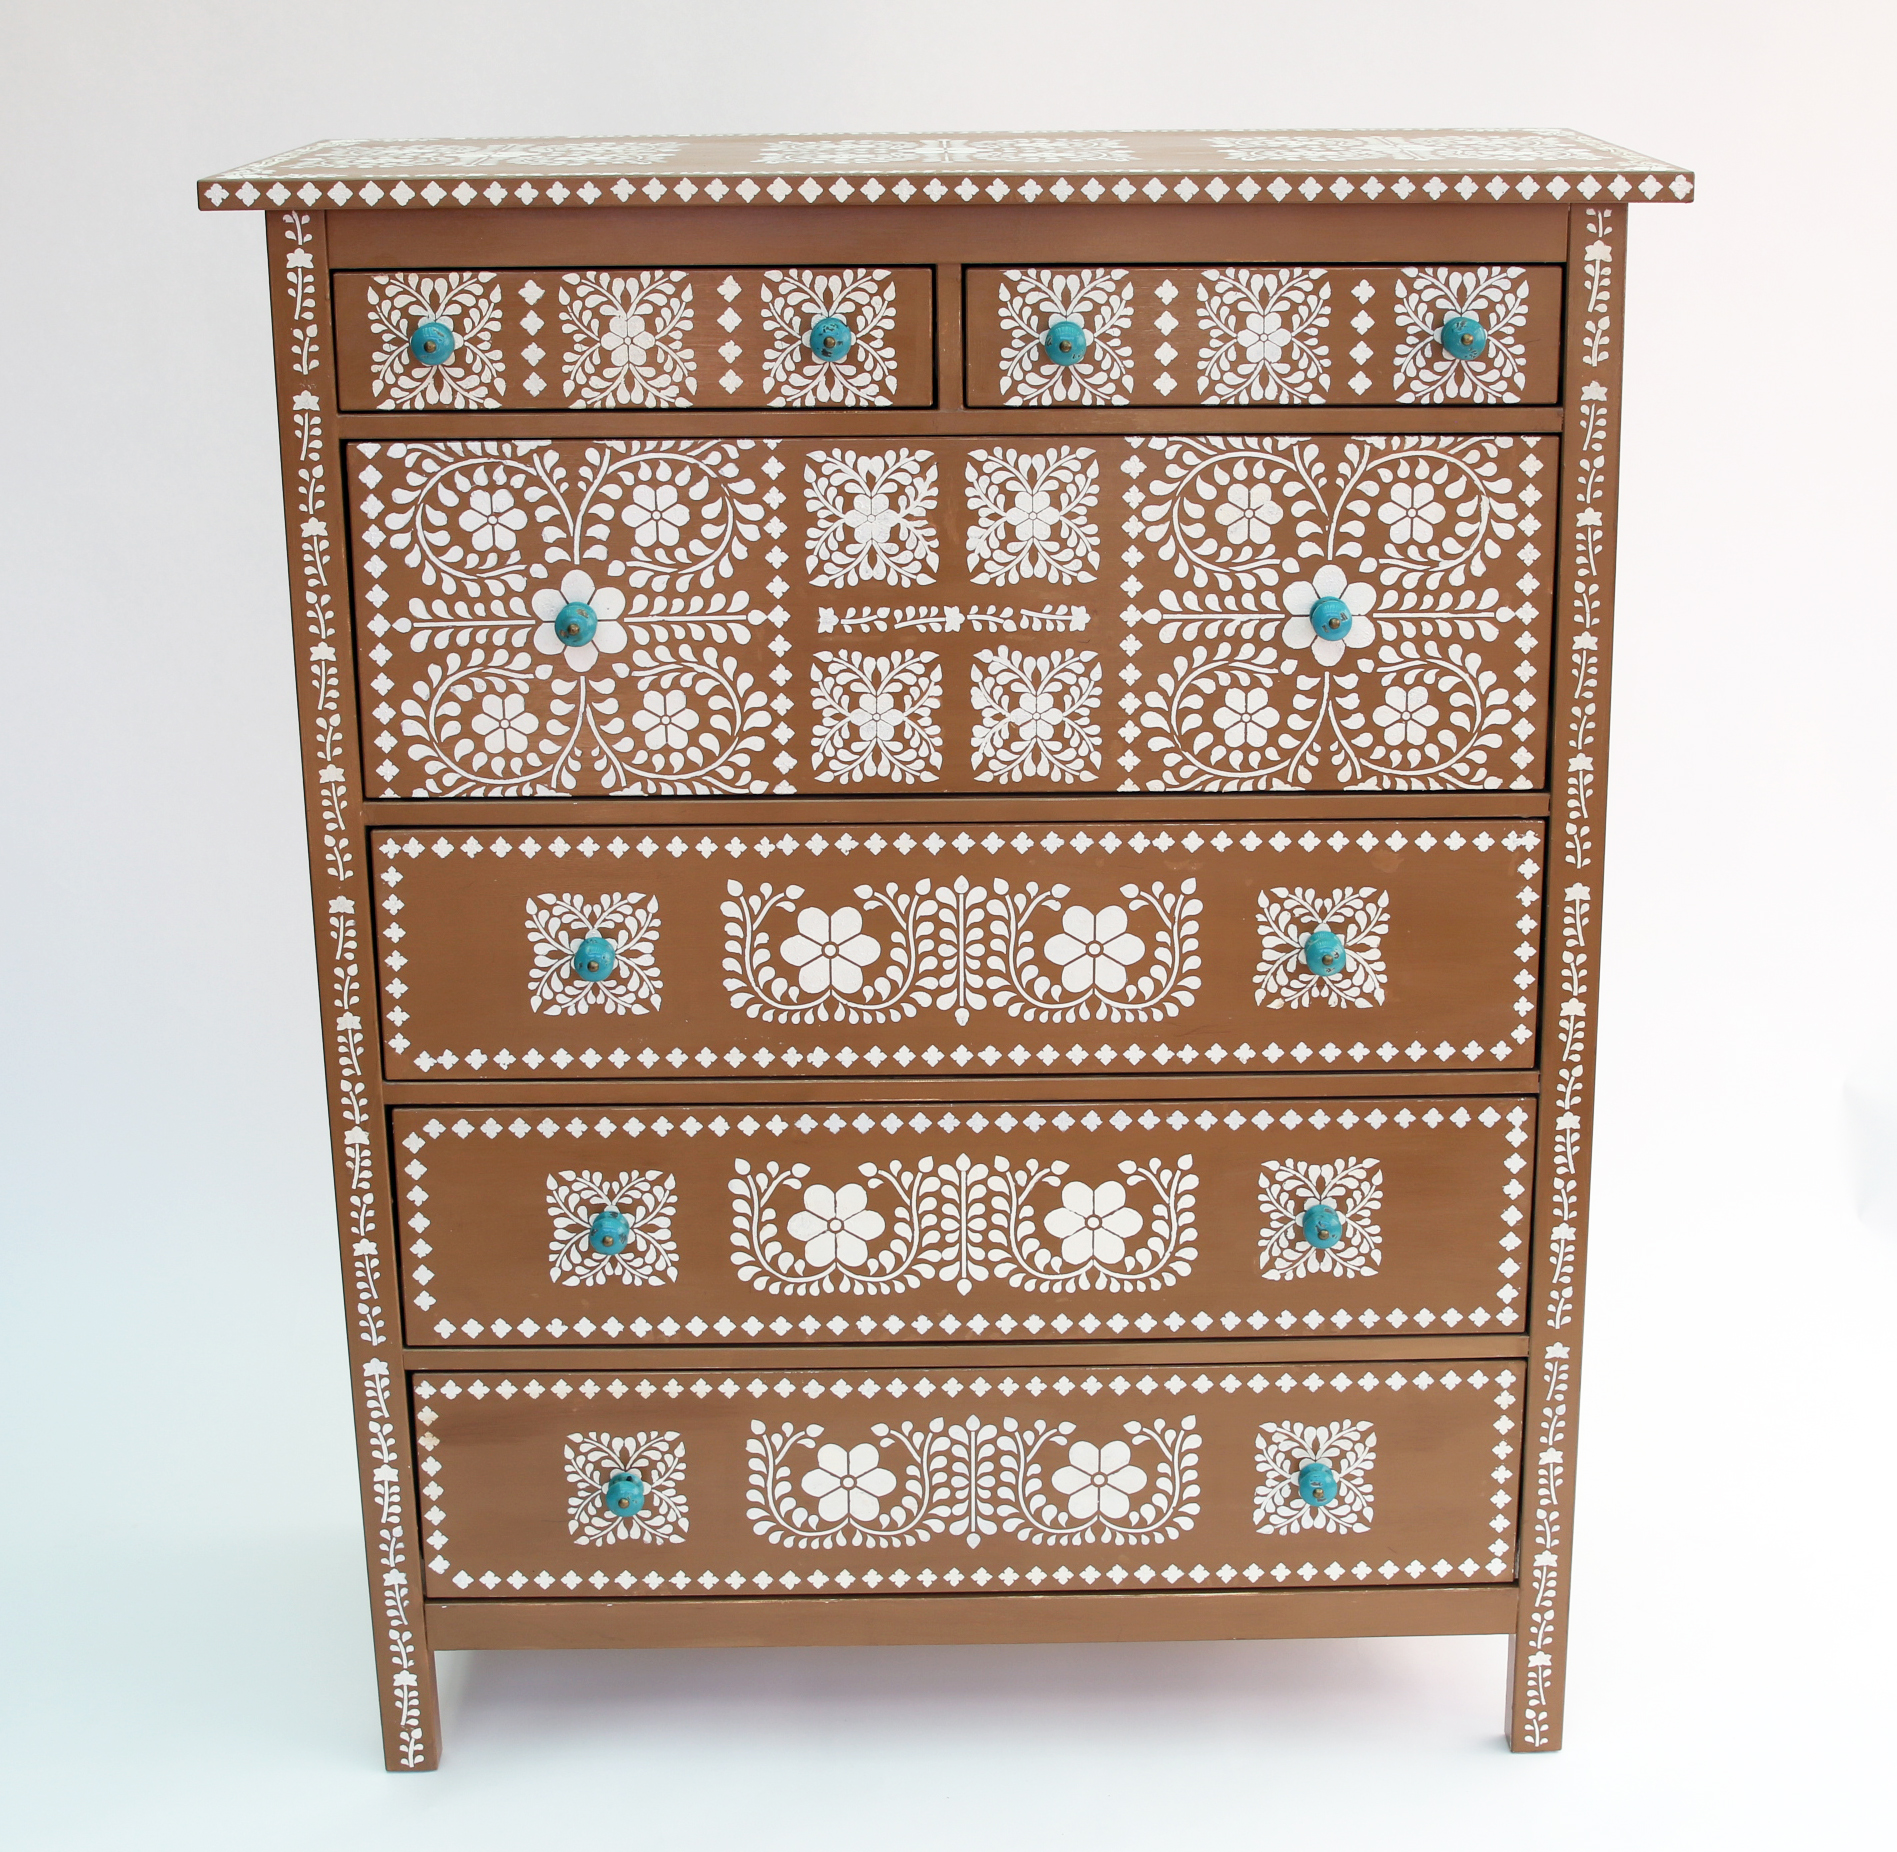 Do You Love The Look Of Bone Inlay Furniture But Not Price Well Can Stencil Your Own Version With Some Cleverly Placed Stencils And A Just Small